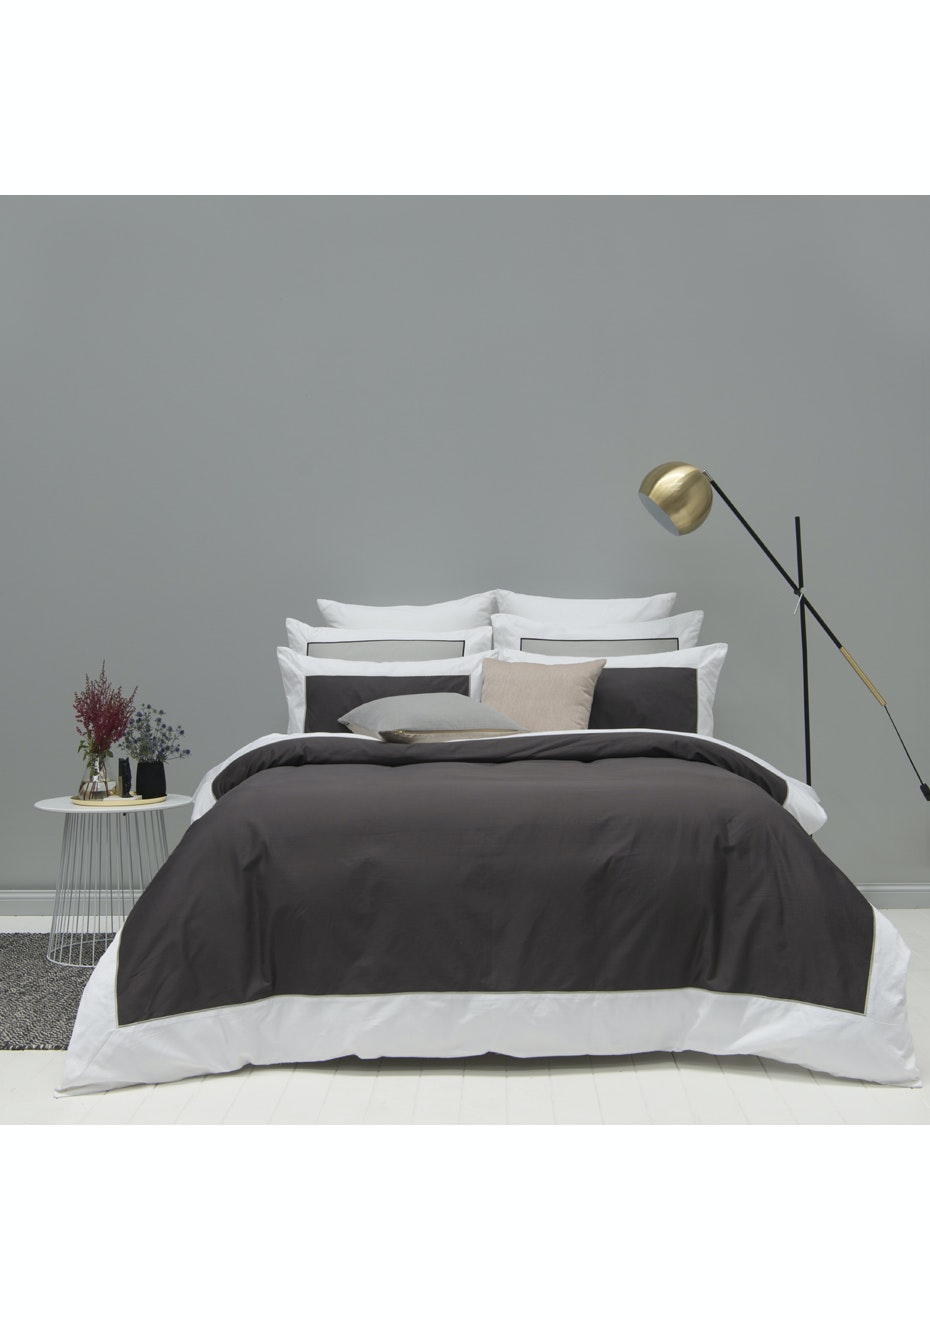 Style & Co 1000 Thread count Egyptian Cotton Hotel Collection Ascot Quilt Cover sets King Coal